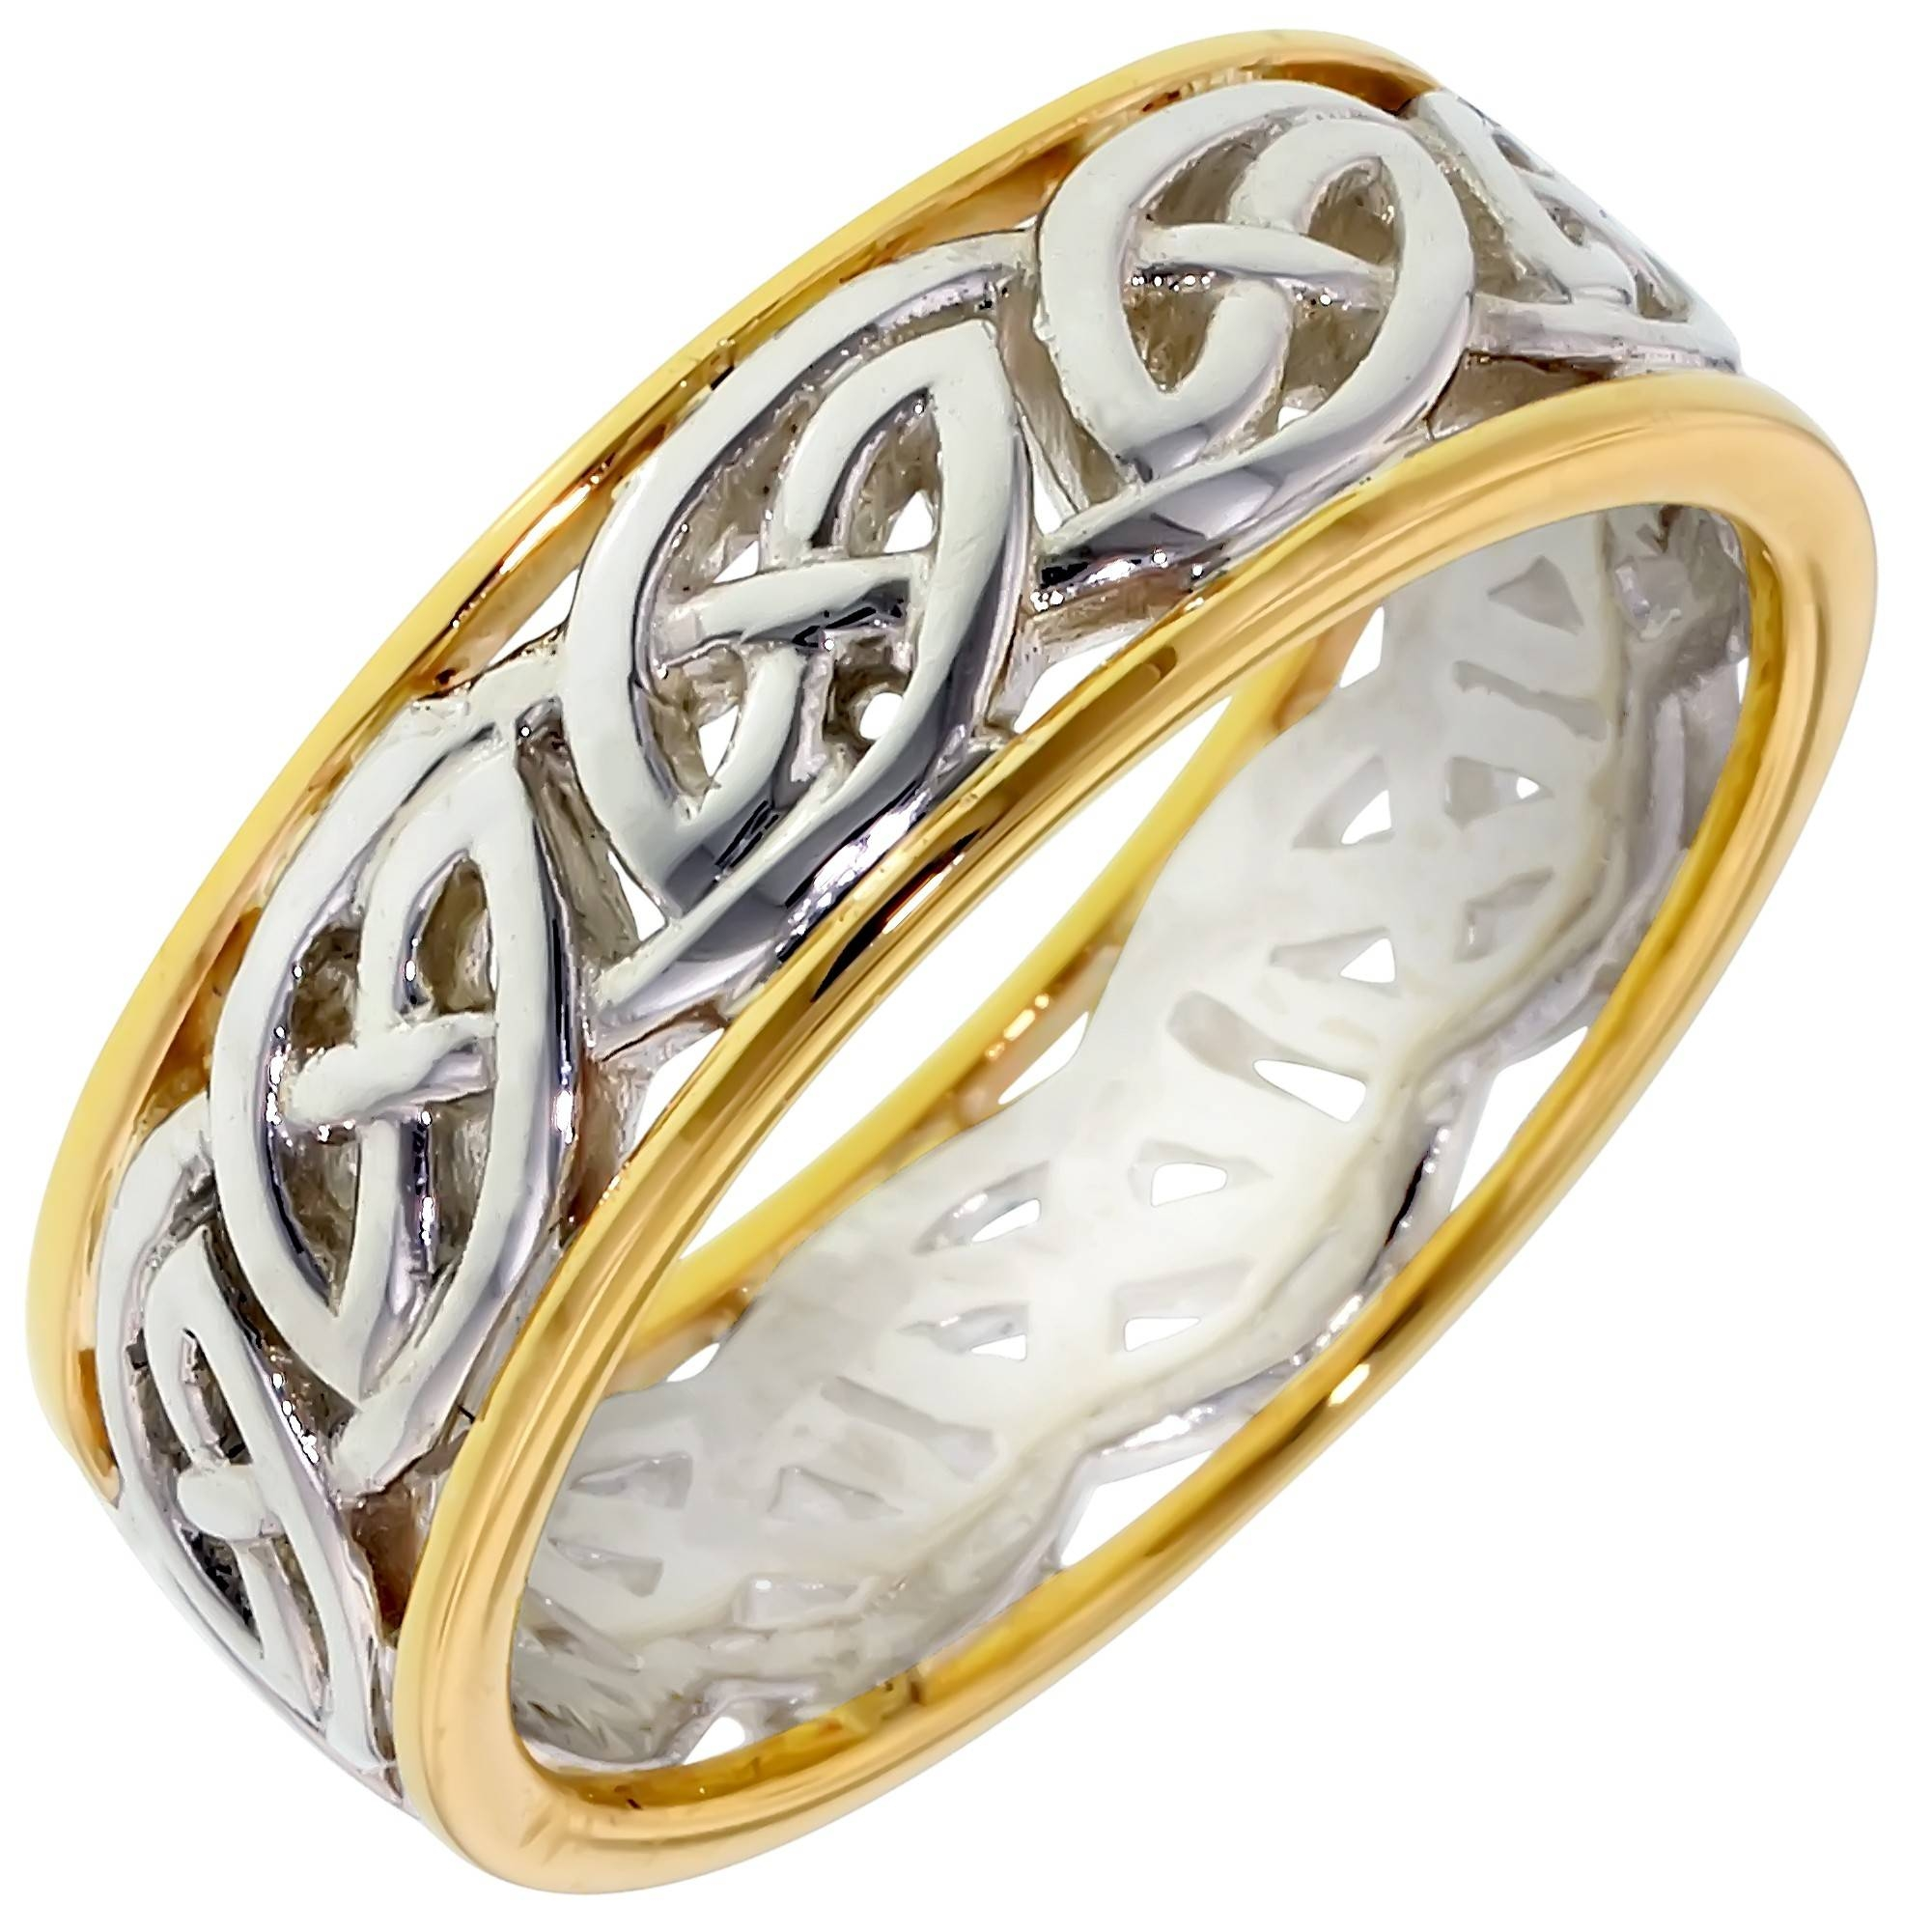 Keith Jack Window To The Soul Mens Celtic Ring In Sterling Silver Within Mens Celtic Engagement Rings (Gallery 4 of 15)